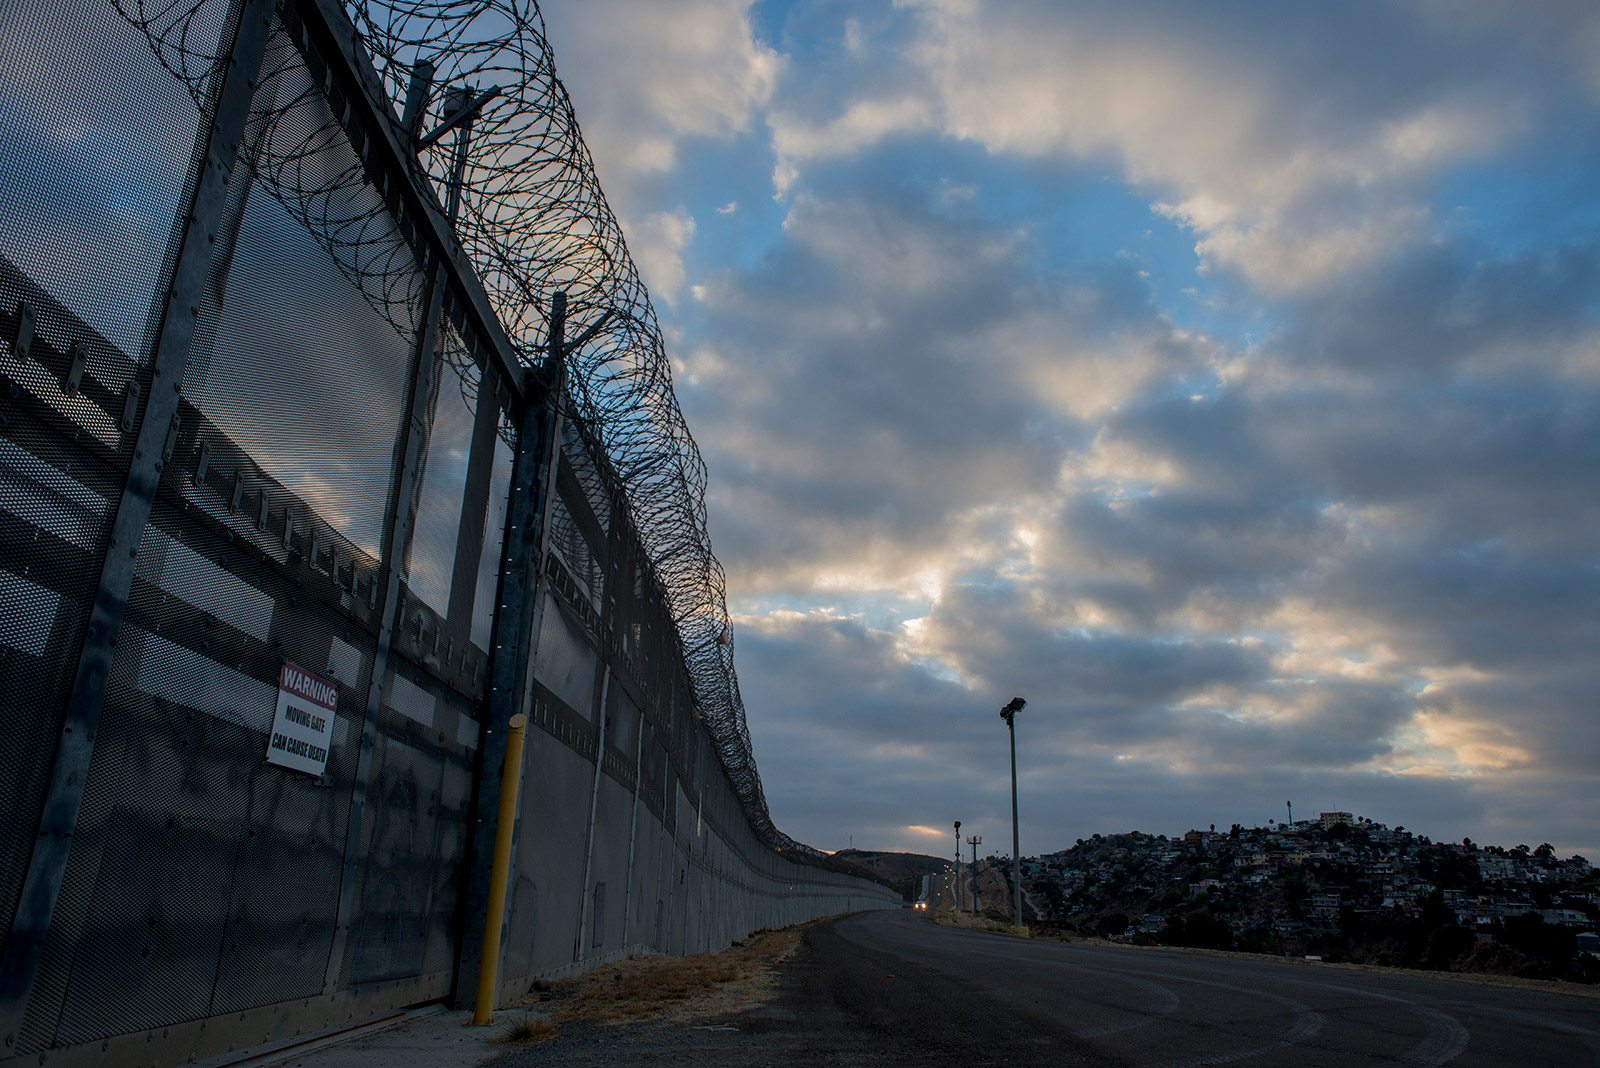 Stretches of secondary fencing are topped with spirals of concertina wire along the U.S.-Mexico border between the San Ysidro and Otay Mesa ports of entry, in San Diego on Aug. 16, 2017. Border Patrol agents use the frontage road between this and primary fencing to patrol for immigrants attempting to enter the U.S. illegally. <em>(Brandon Quester/inewsource)</em>